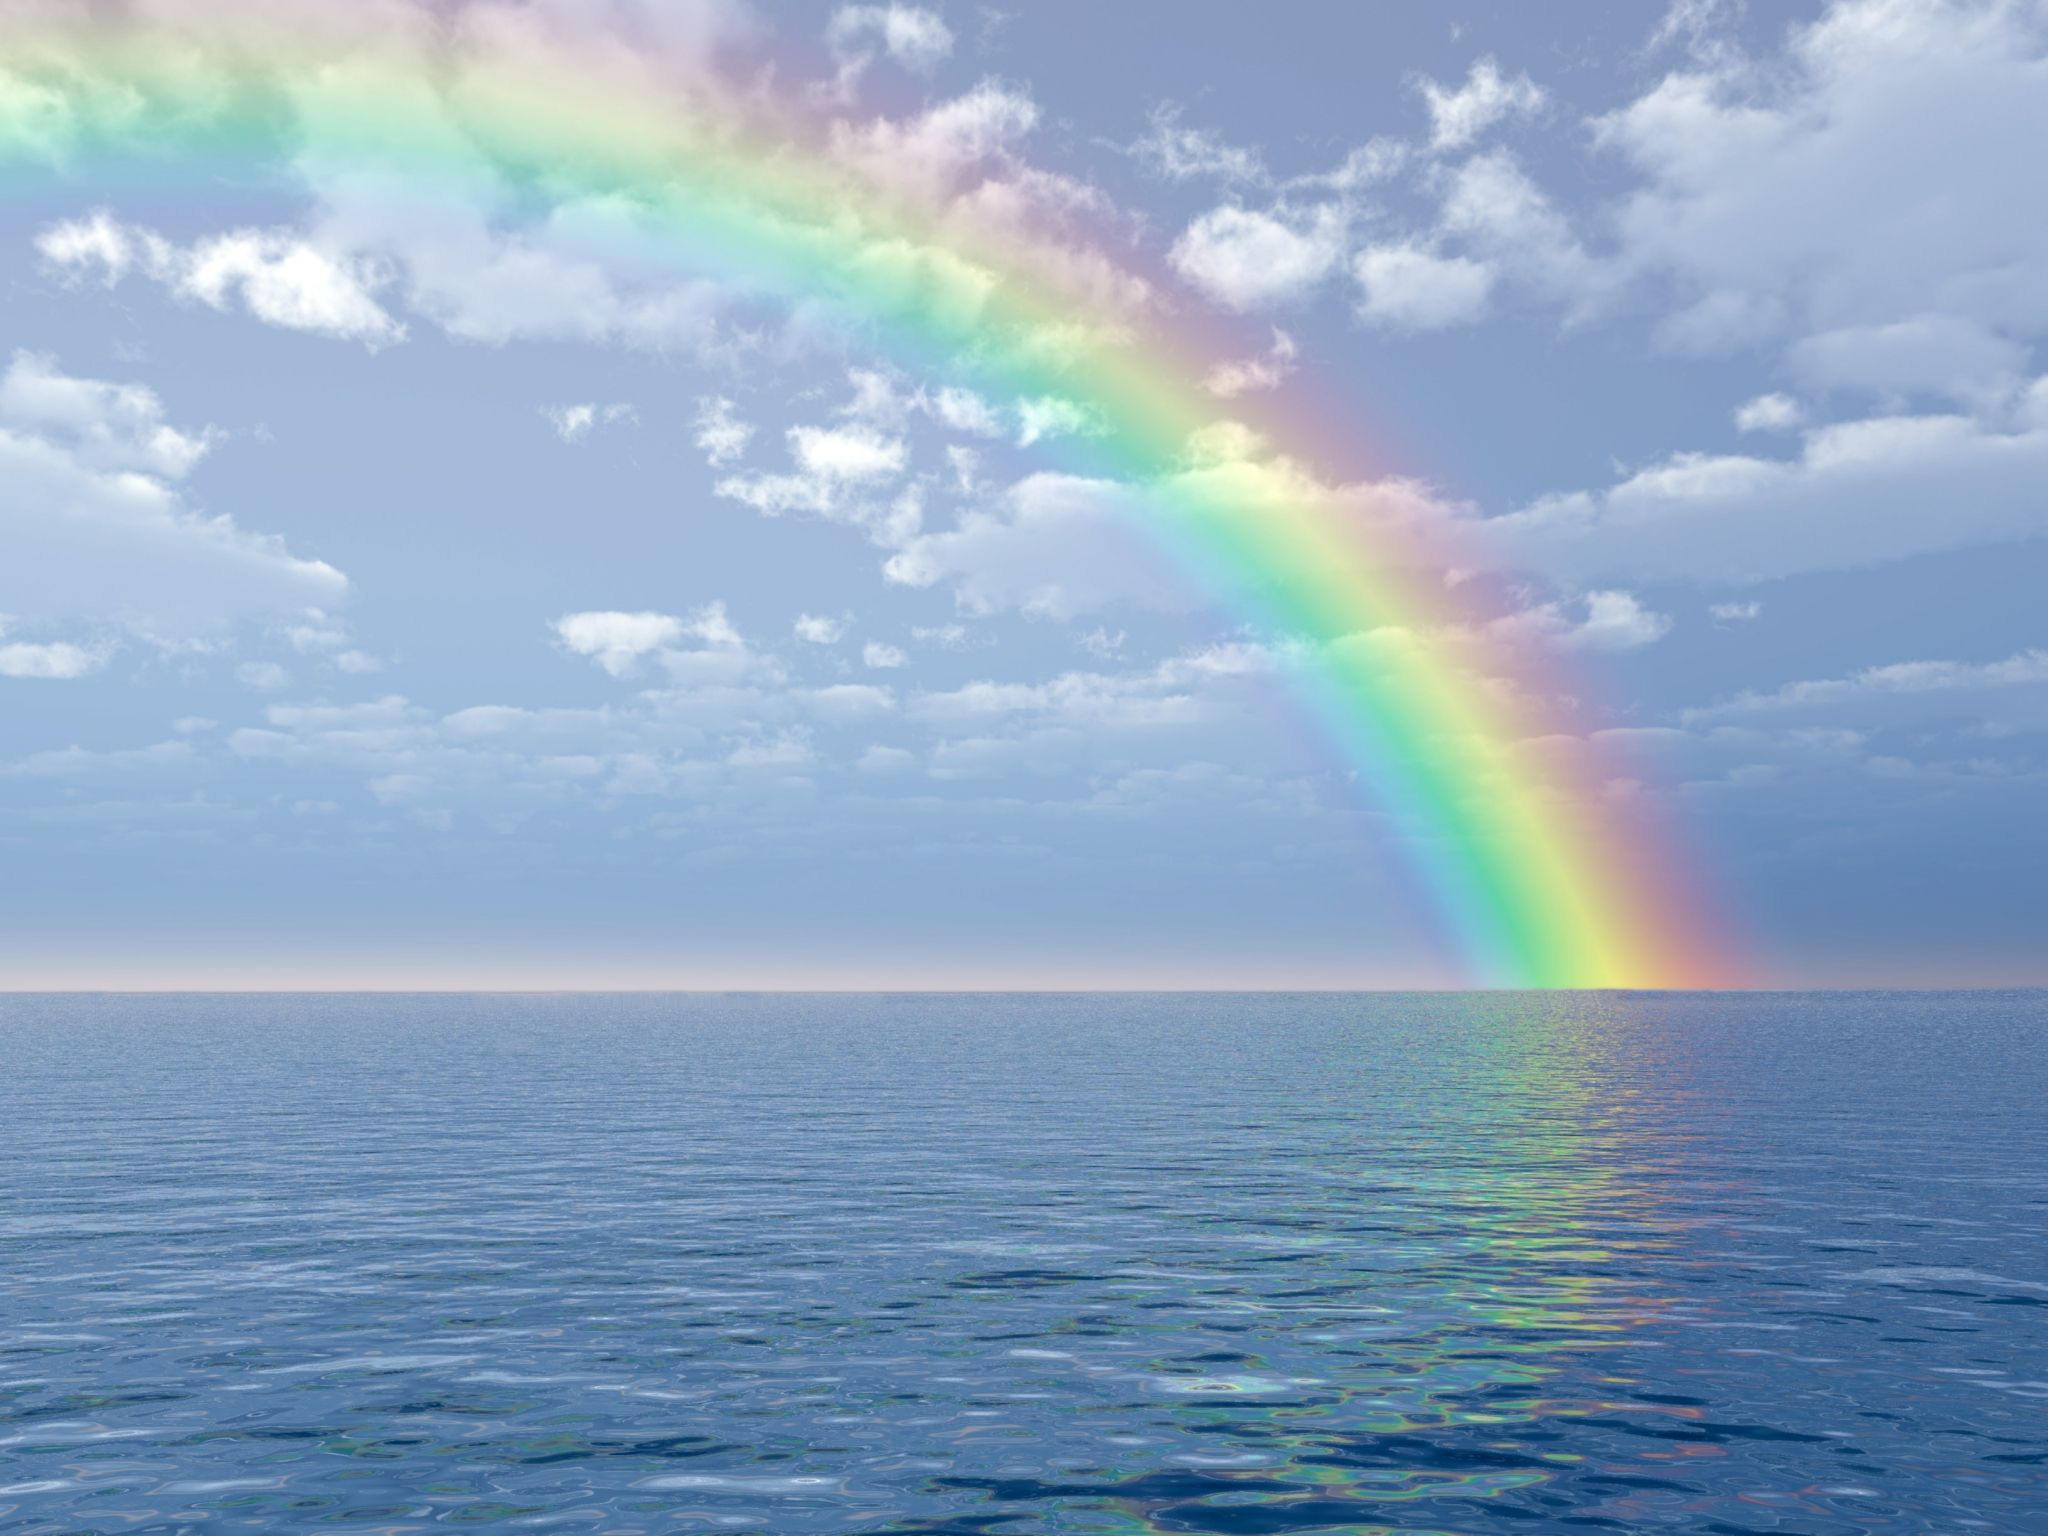 Rainbow Backgrounds For Widescreen Free Nature Photography Rainbow Background Ocean Surf